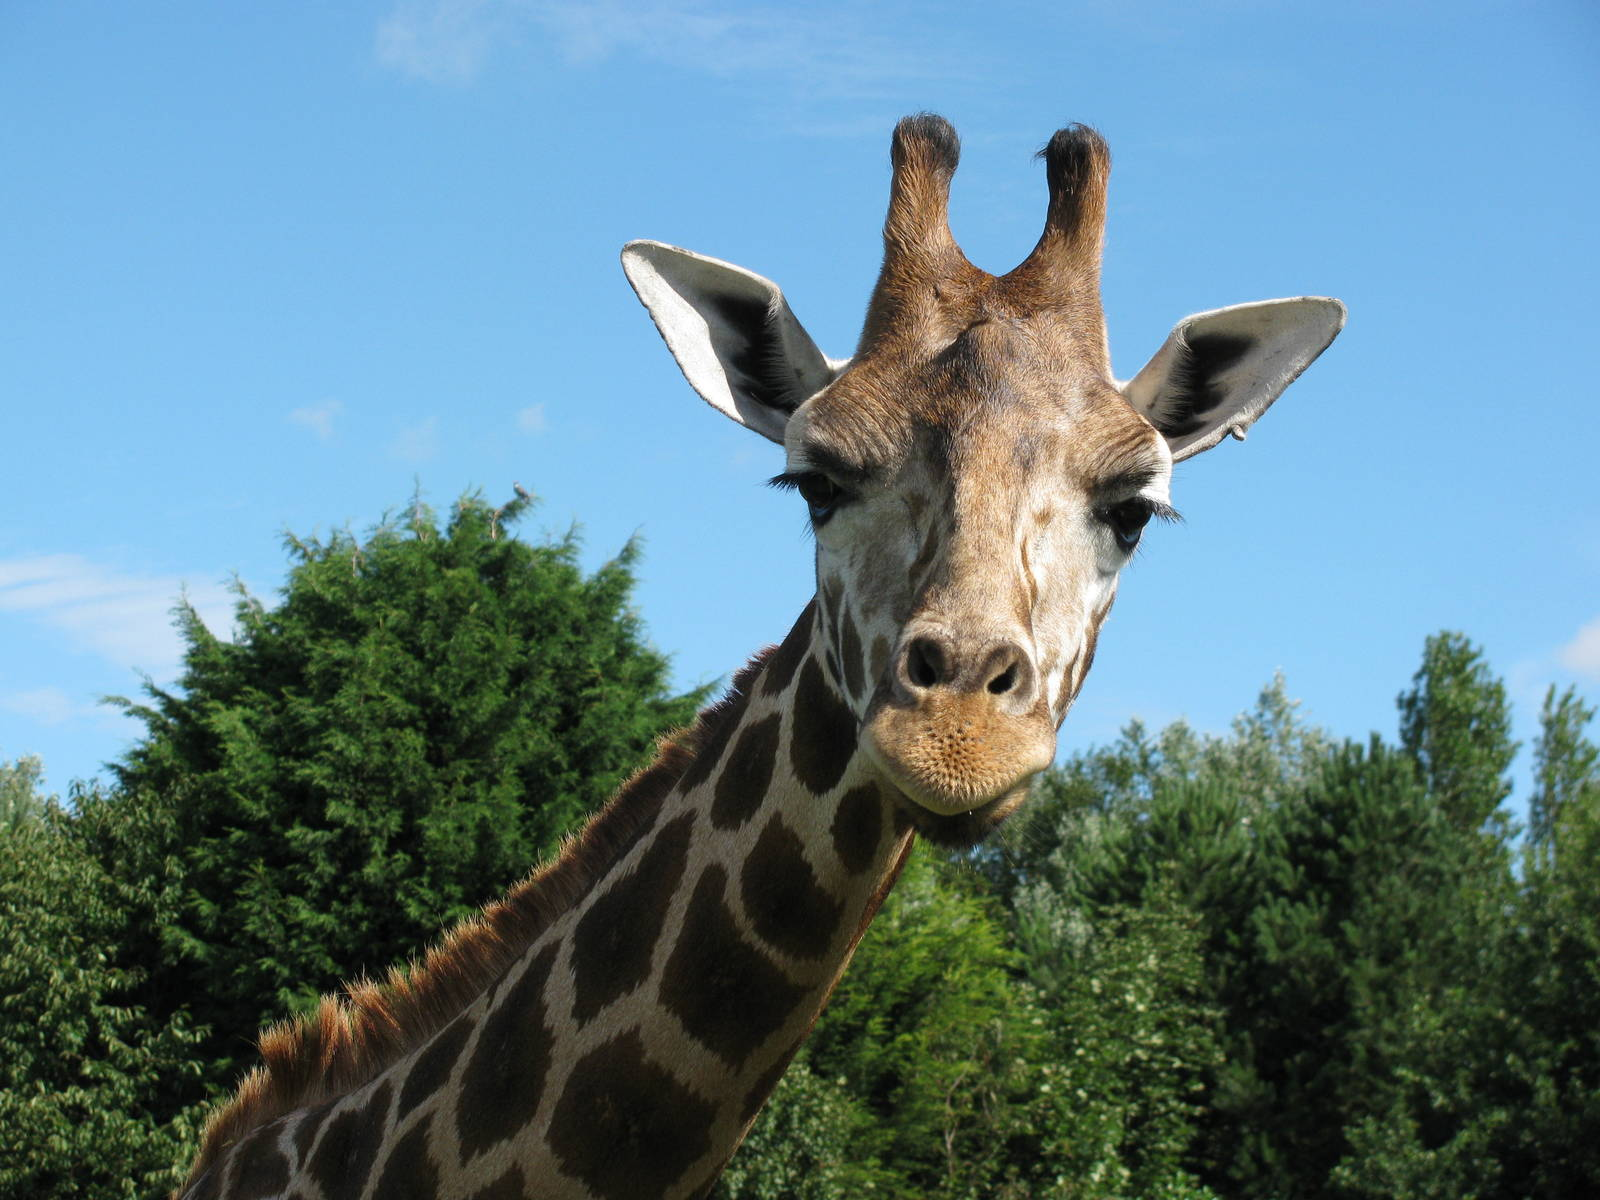 images of giraffes